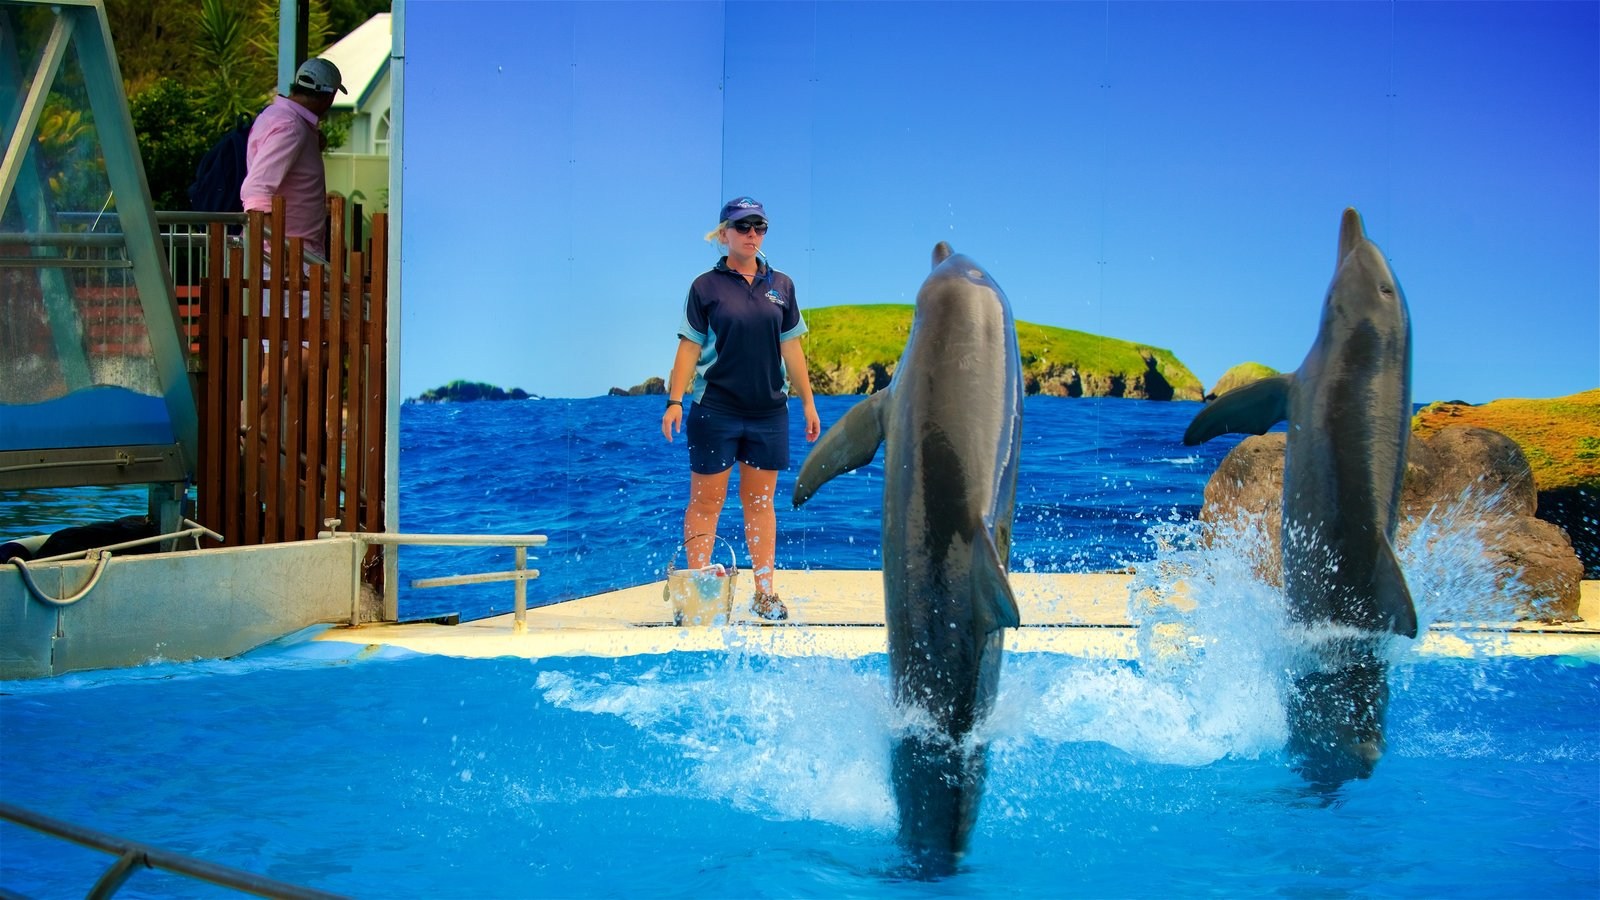 Dolphin Marine Magic which includes zoo animals and cuddly or friendly animals as well as an individual femail